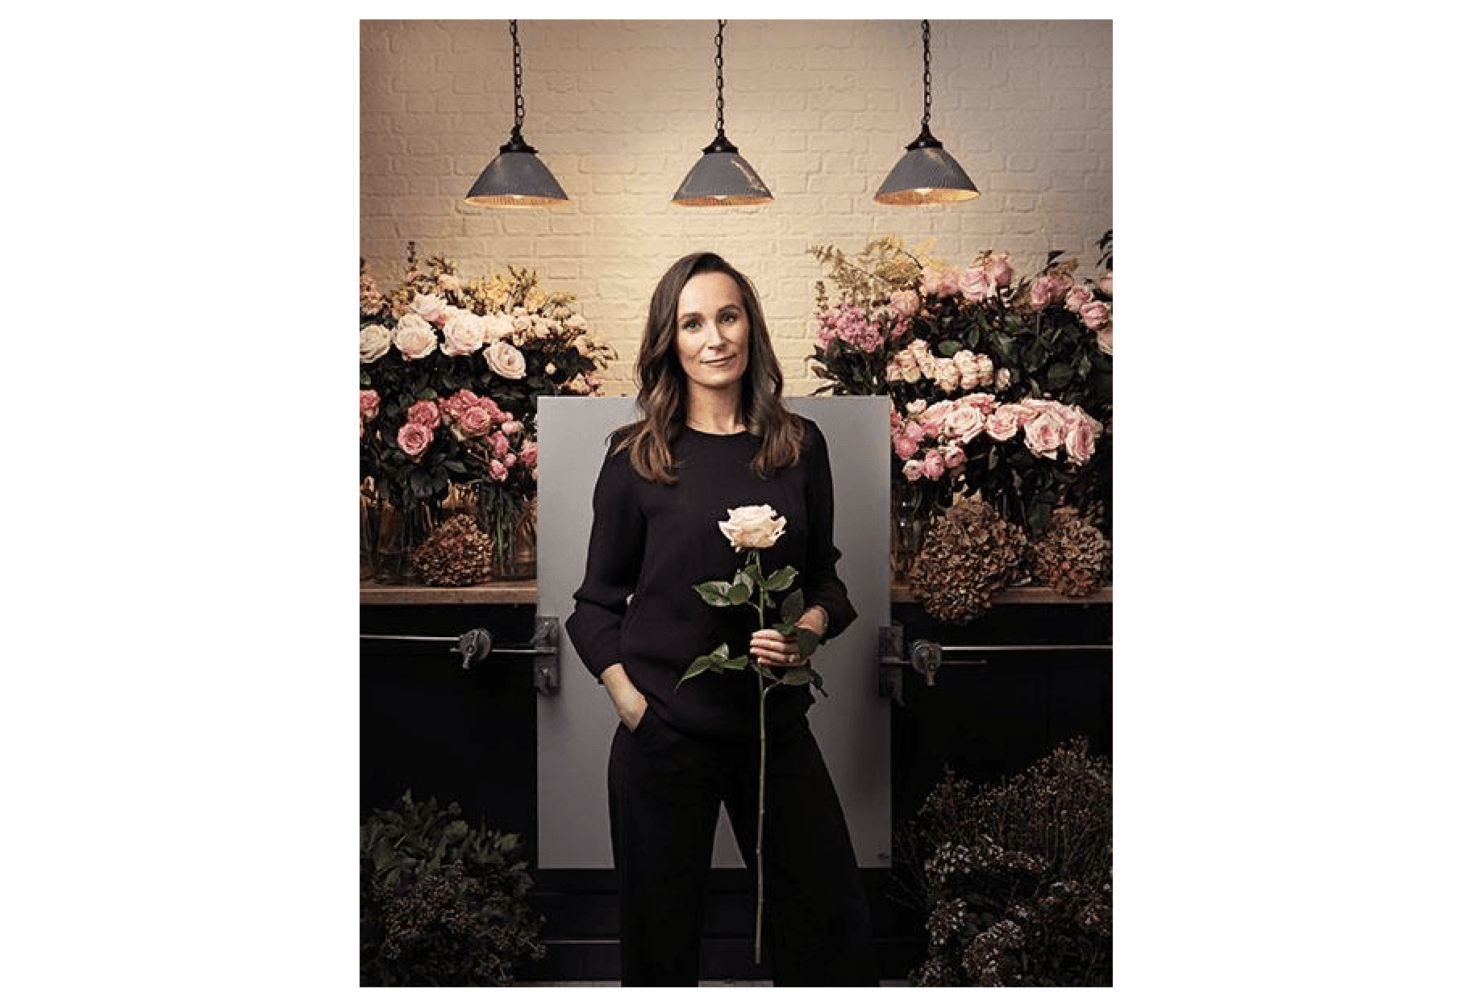 Royal wedding the self taught florist behind the scenes with meghan the royal wedding flowers will be a true reflection of them izmirmasajfo